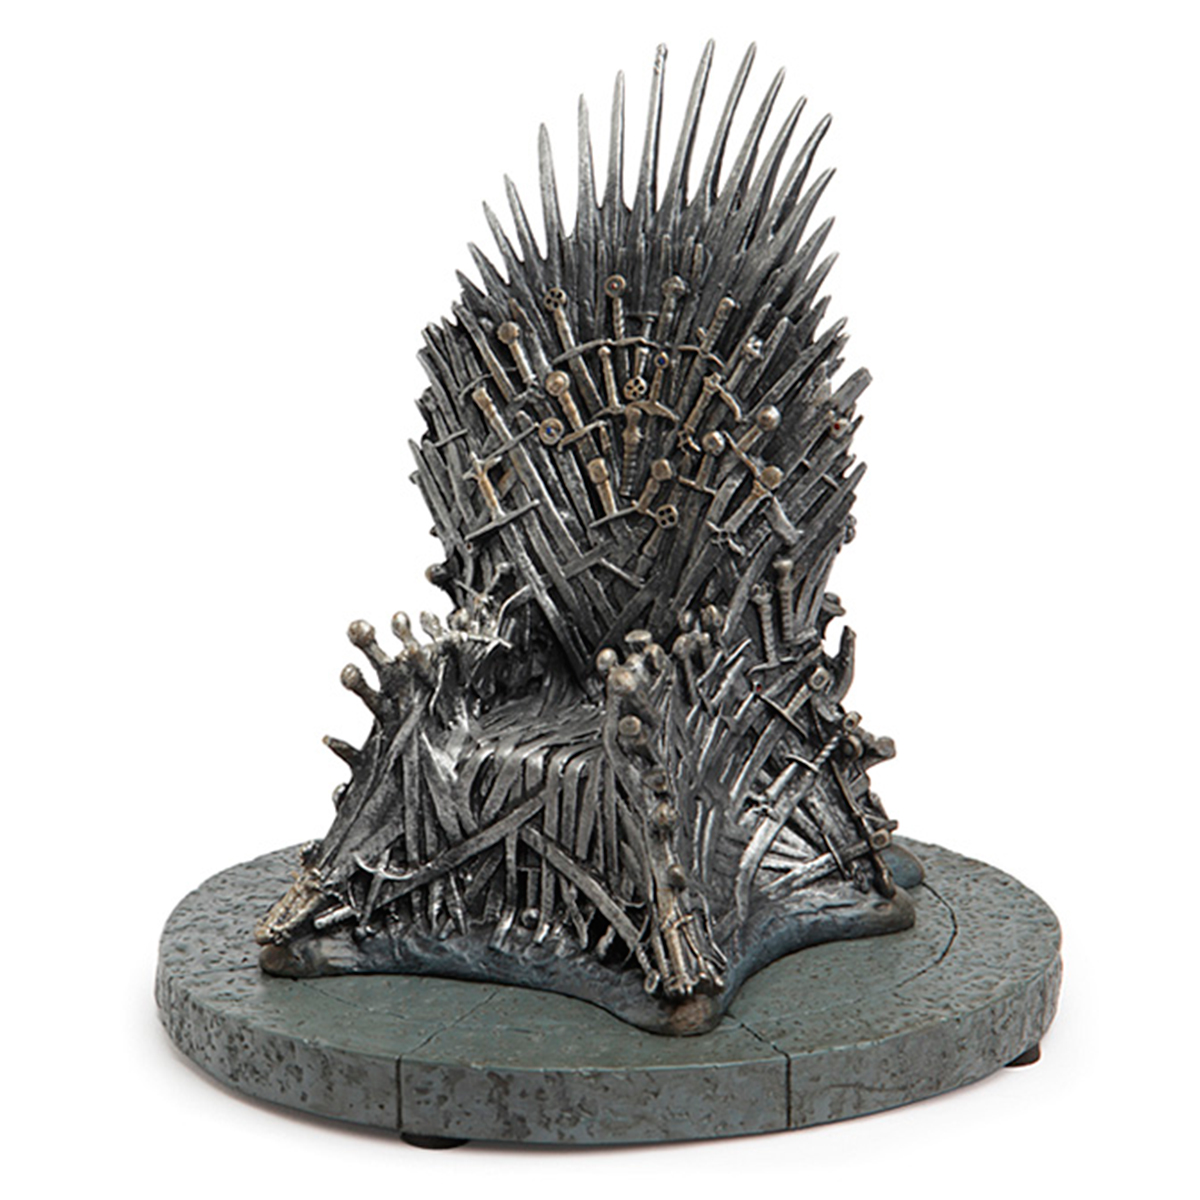 game of thrones office chair egg chairs ikea nerdmania marcas suporte de livros